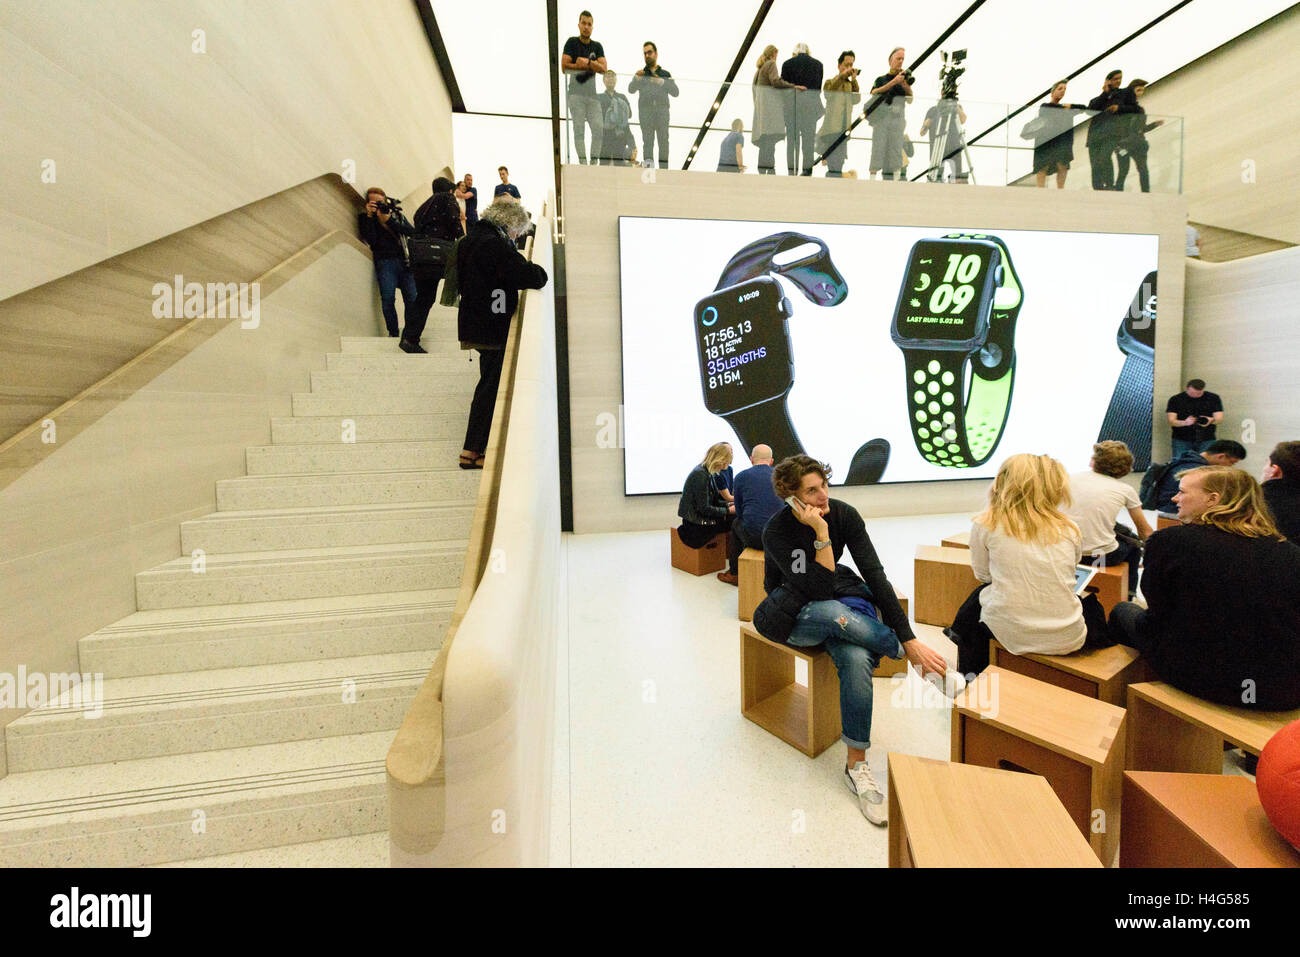 London, UK. 15th October, 2016. Customers shopping inside the Apple store in Regent Street with a new exterior and Stock Photo